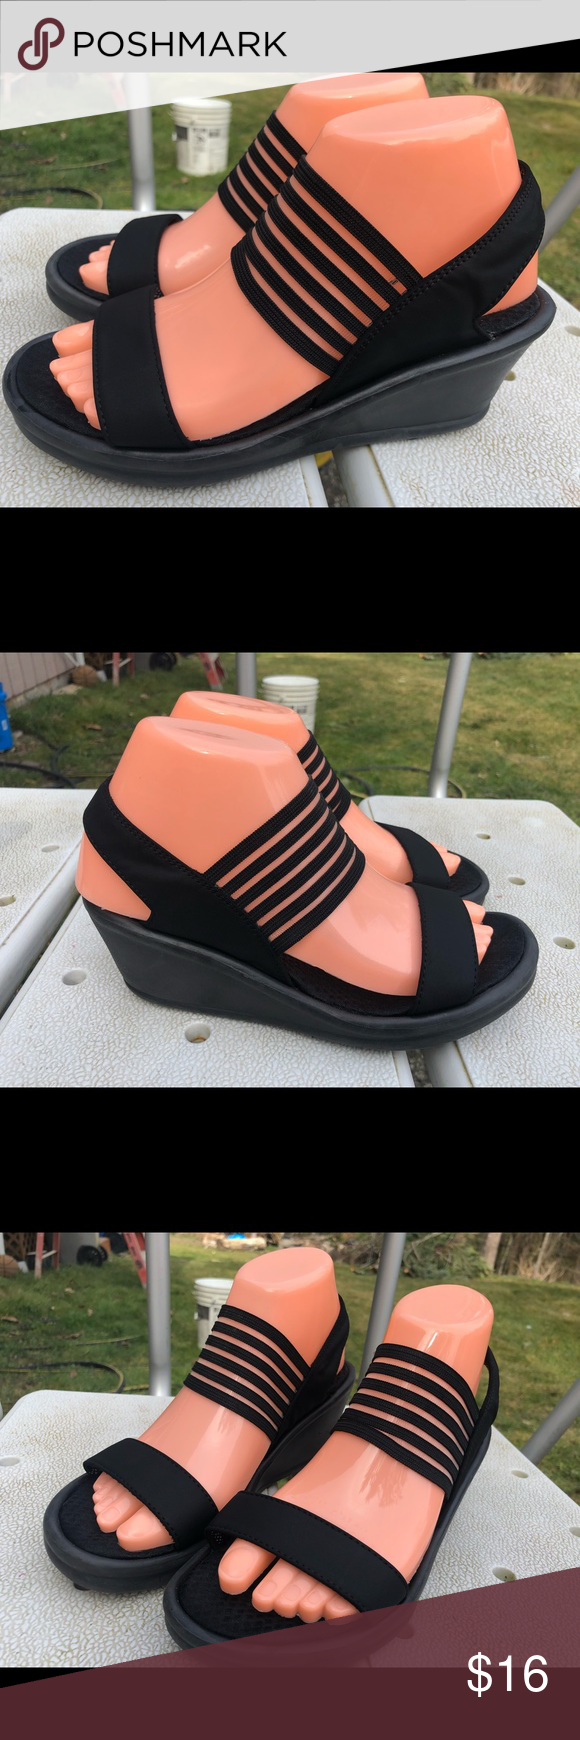 cada66b5d5 Skechers 38472 Rumblers Sci-Fi Black Sandals SZ. 7 Skechers 38472 Rumblers  Sci-Fi Black Slide On Wedge Sandals Size 7 are good condition, there is no  stains ...